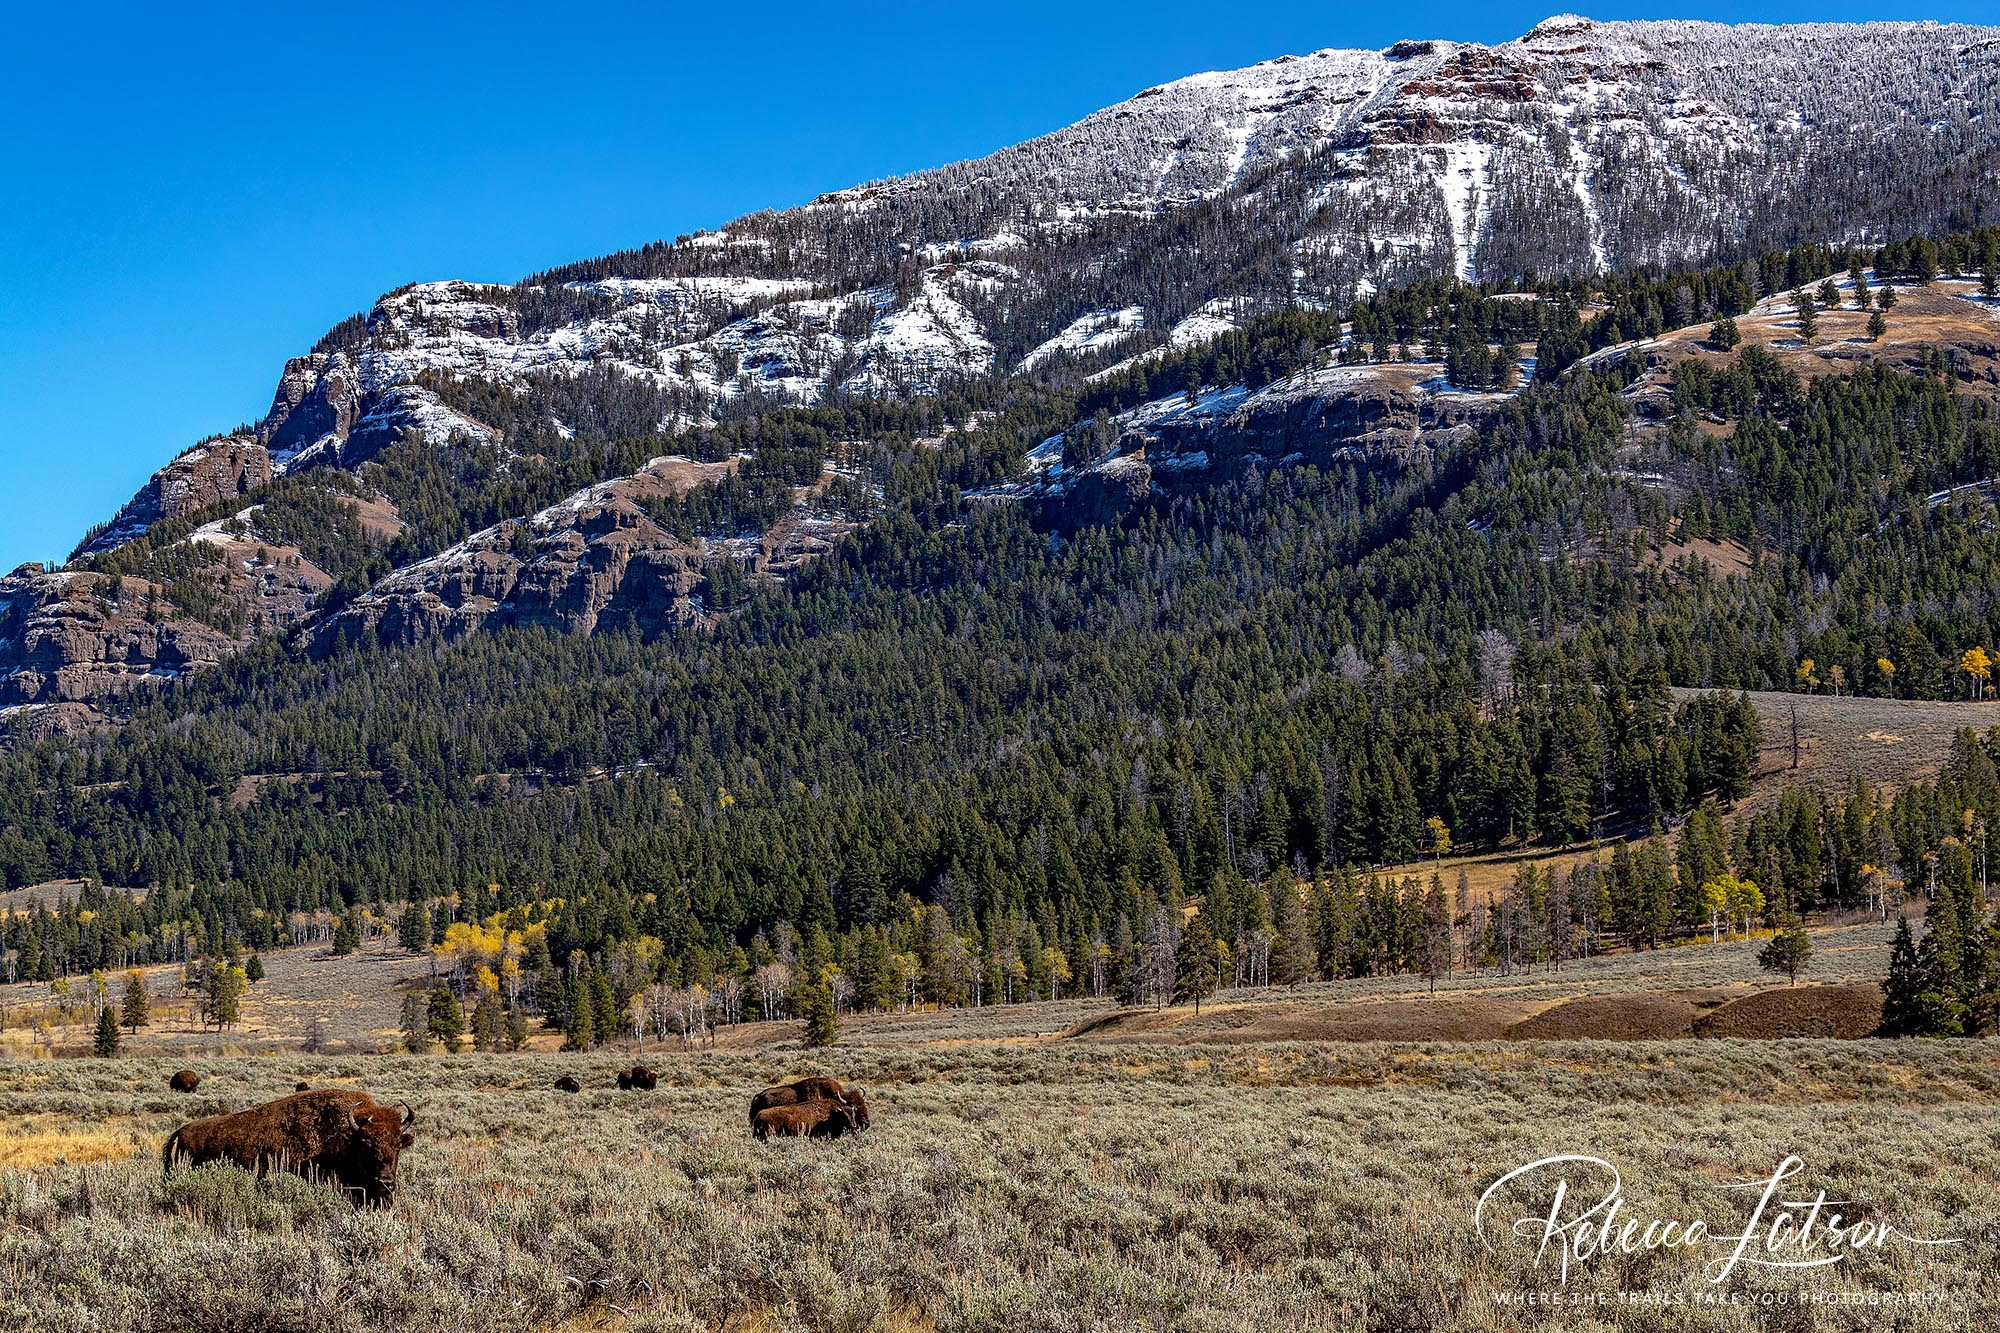 Bison And Mountains In The Lamar Valley